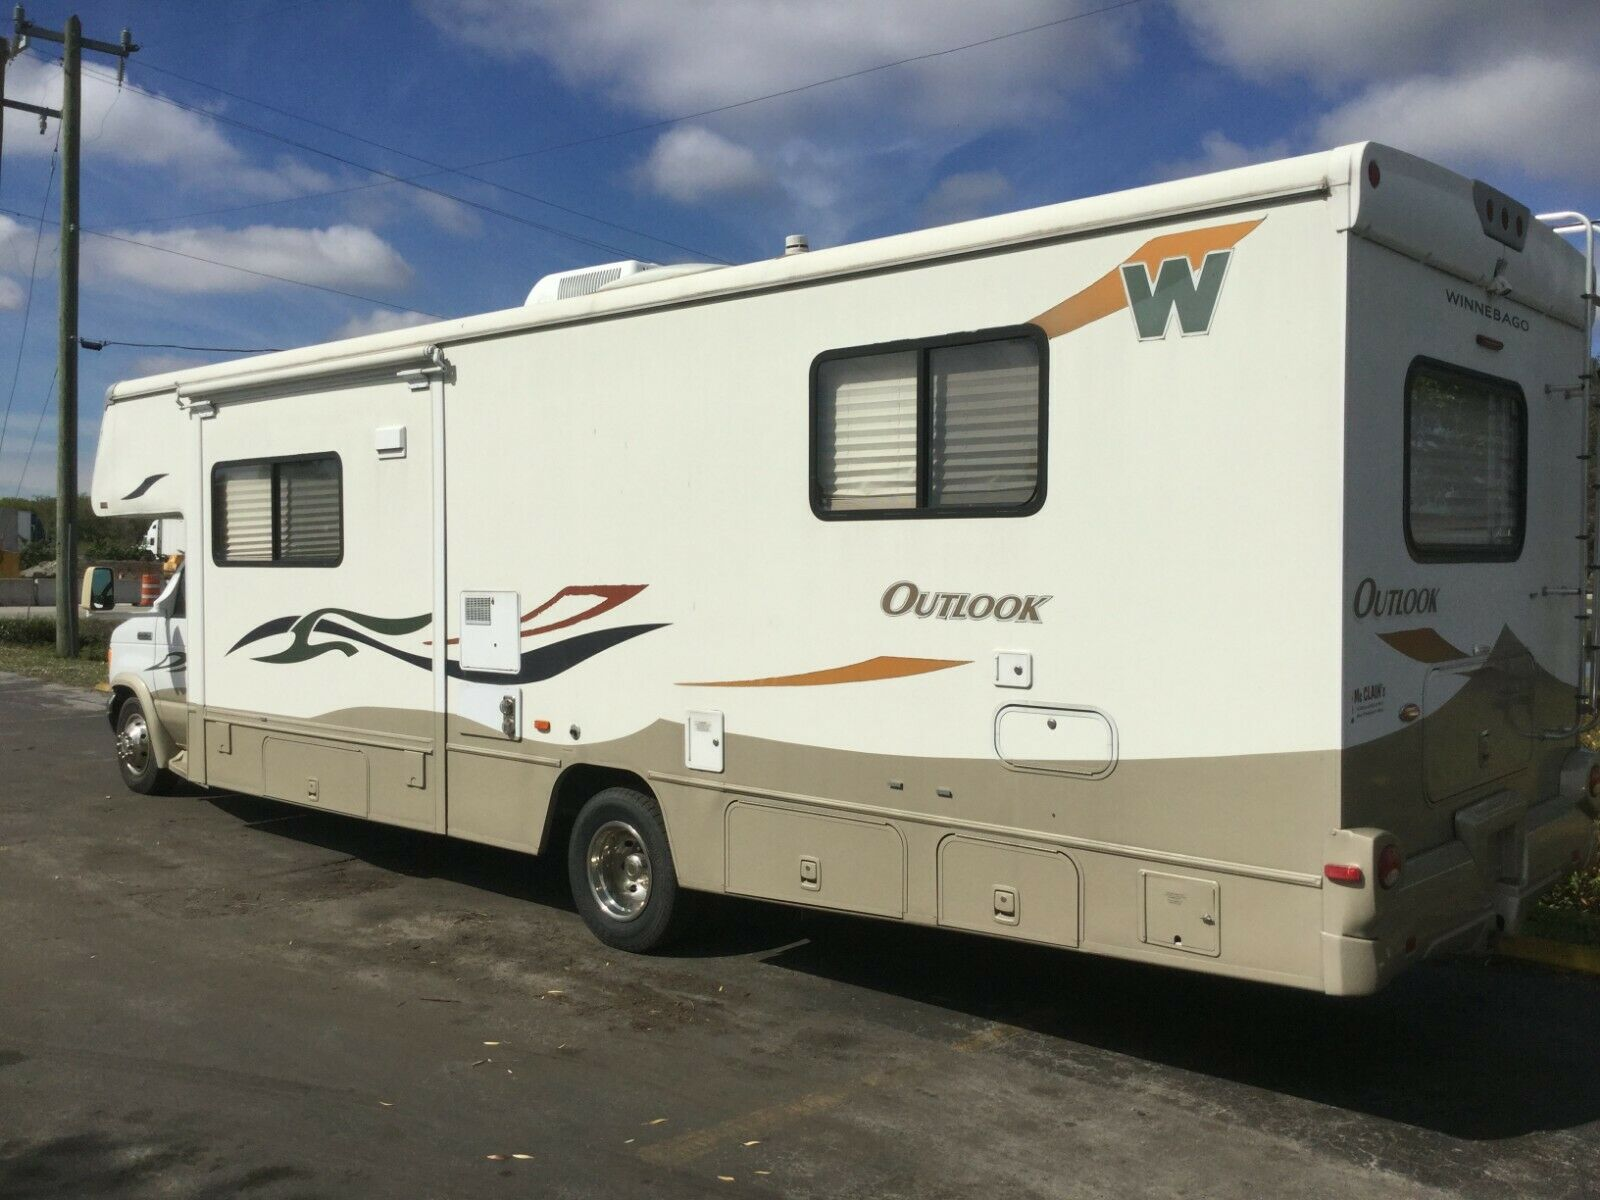 solid 2006 Winnebago Outlook camper